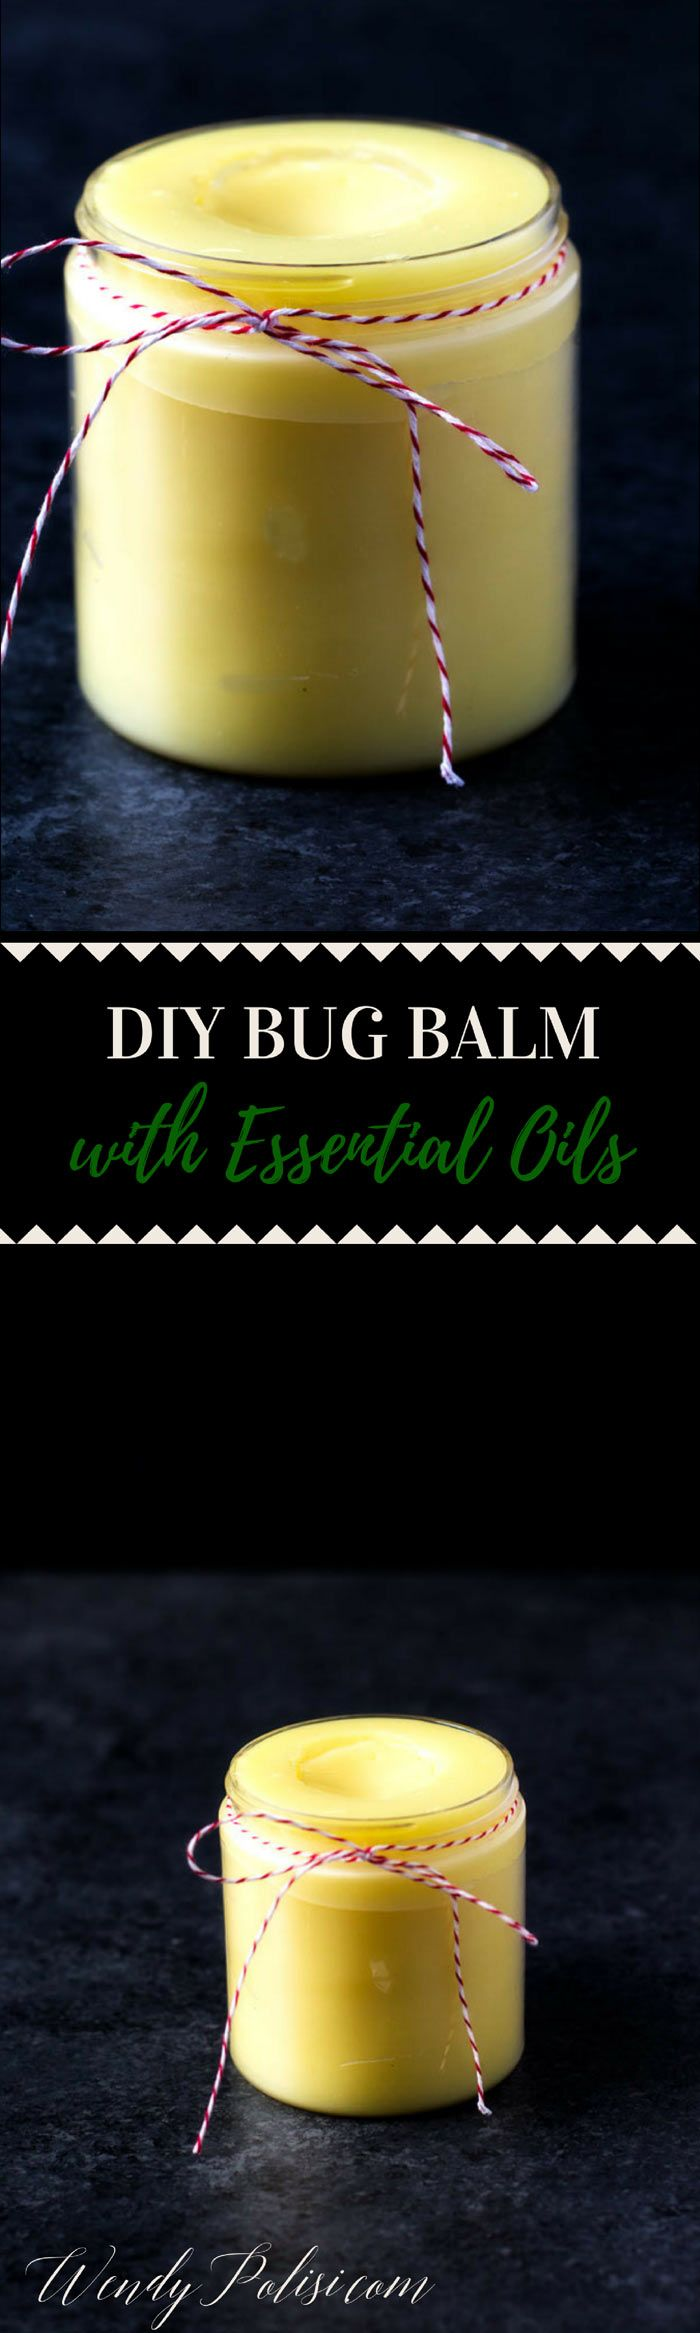 This DIY Bug Balm with Essential Oils is a heavy-duty insect repellant that works on mosquitoes, no-see-ums, biting flies, bees and more! via @wendypolisi